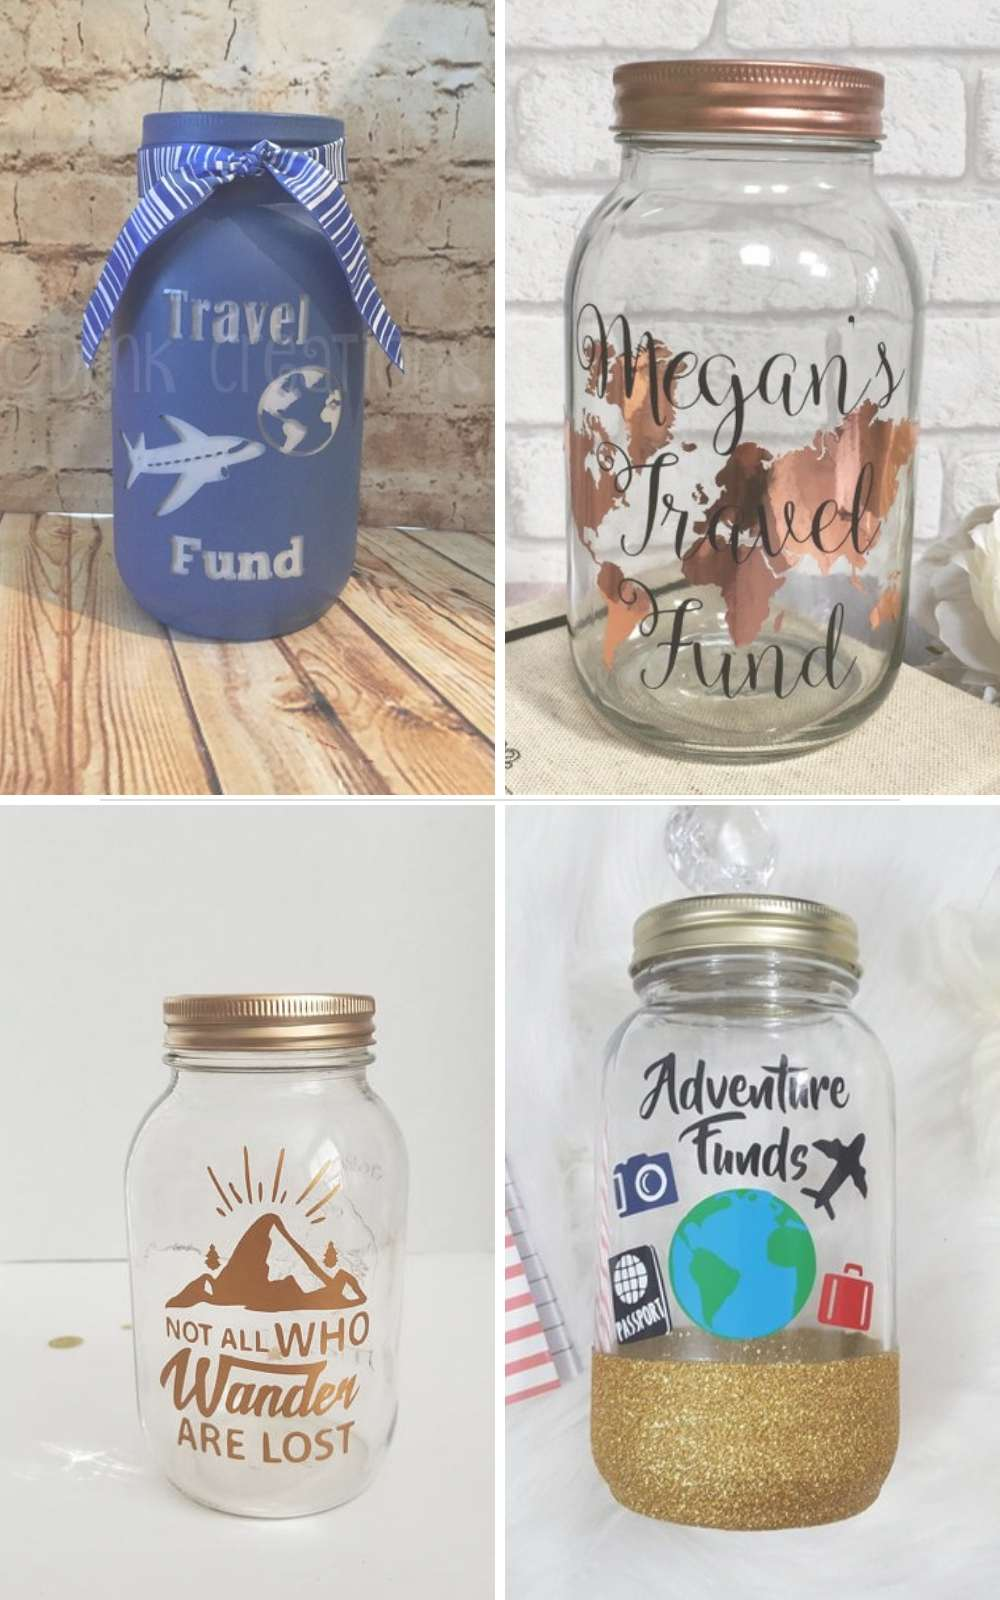 Travel Savings Ideas on Etsy | Travel Savings Jars